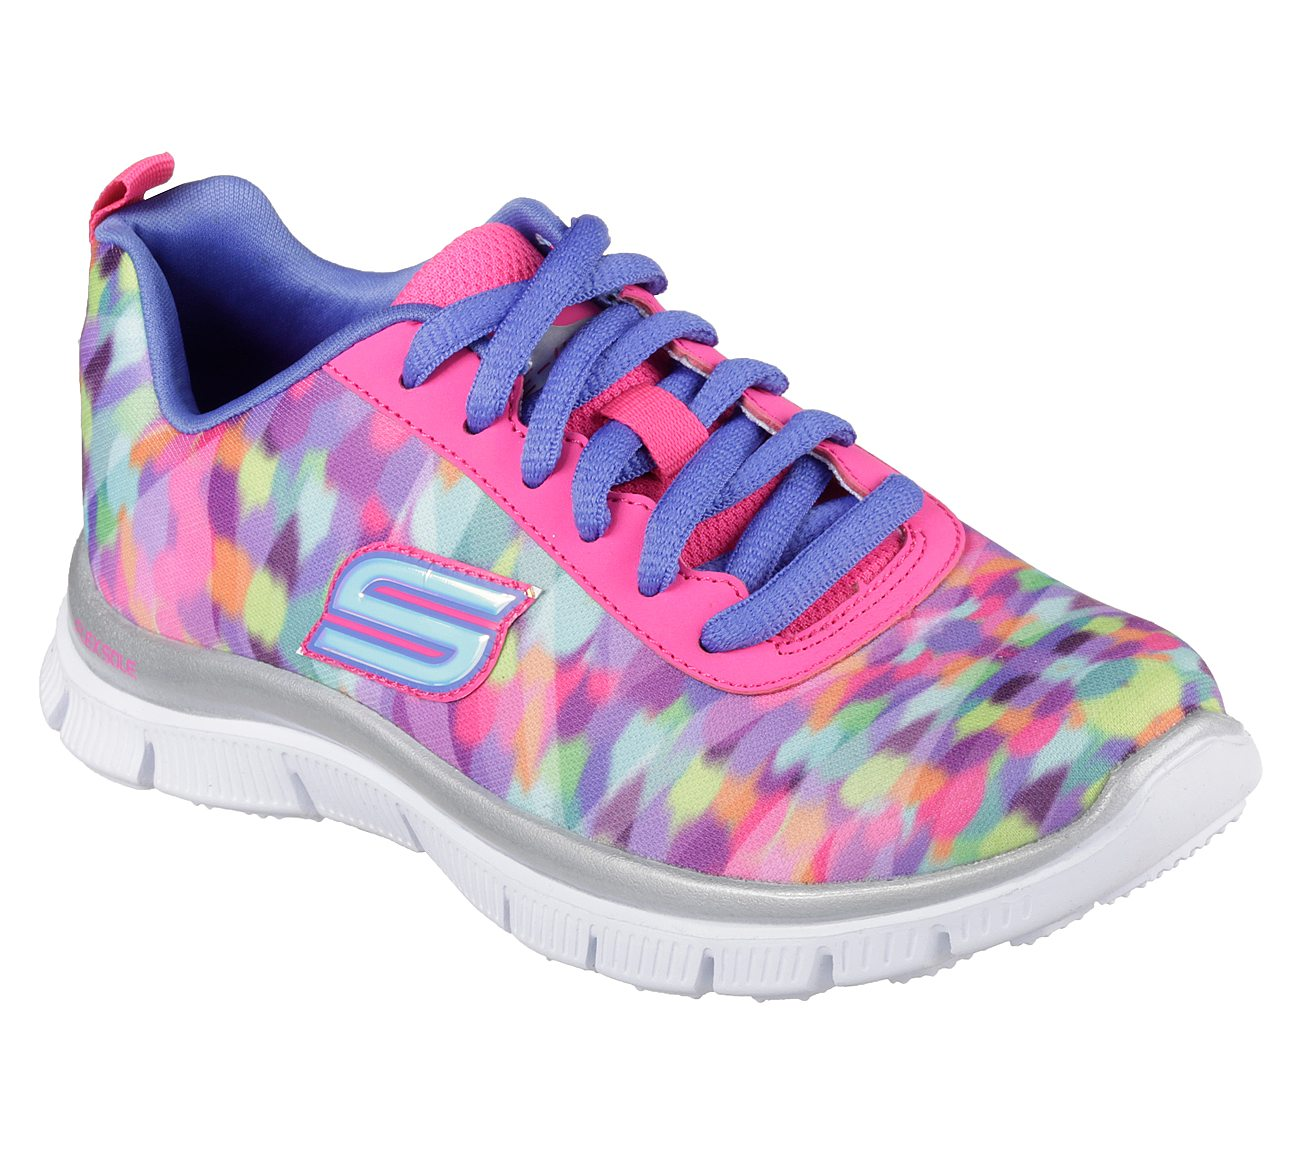 SKECHERS Skech Appeal - Rainbow Runner